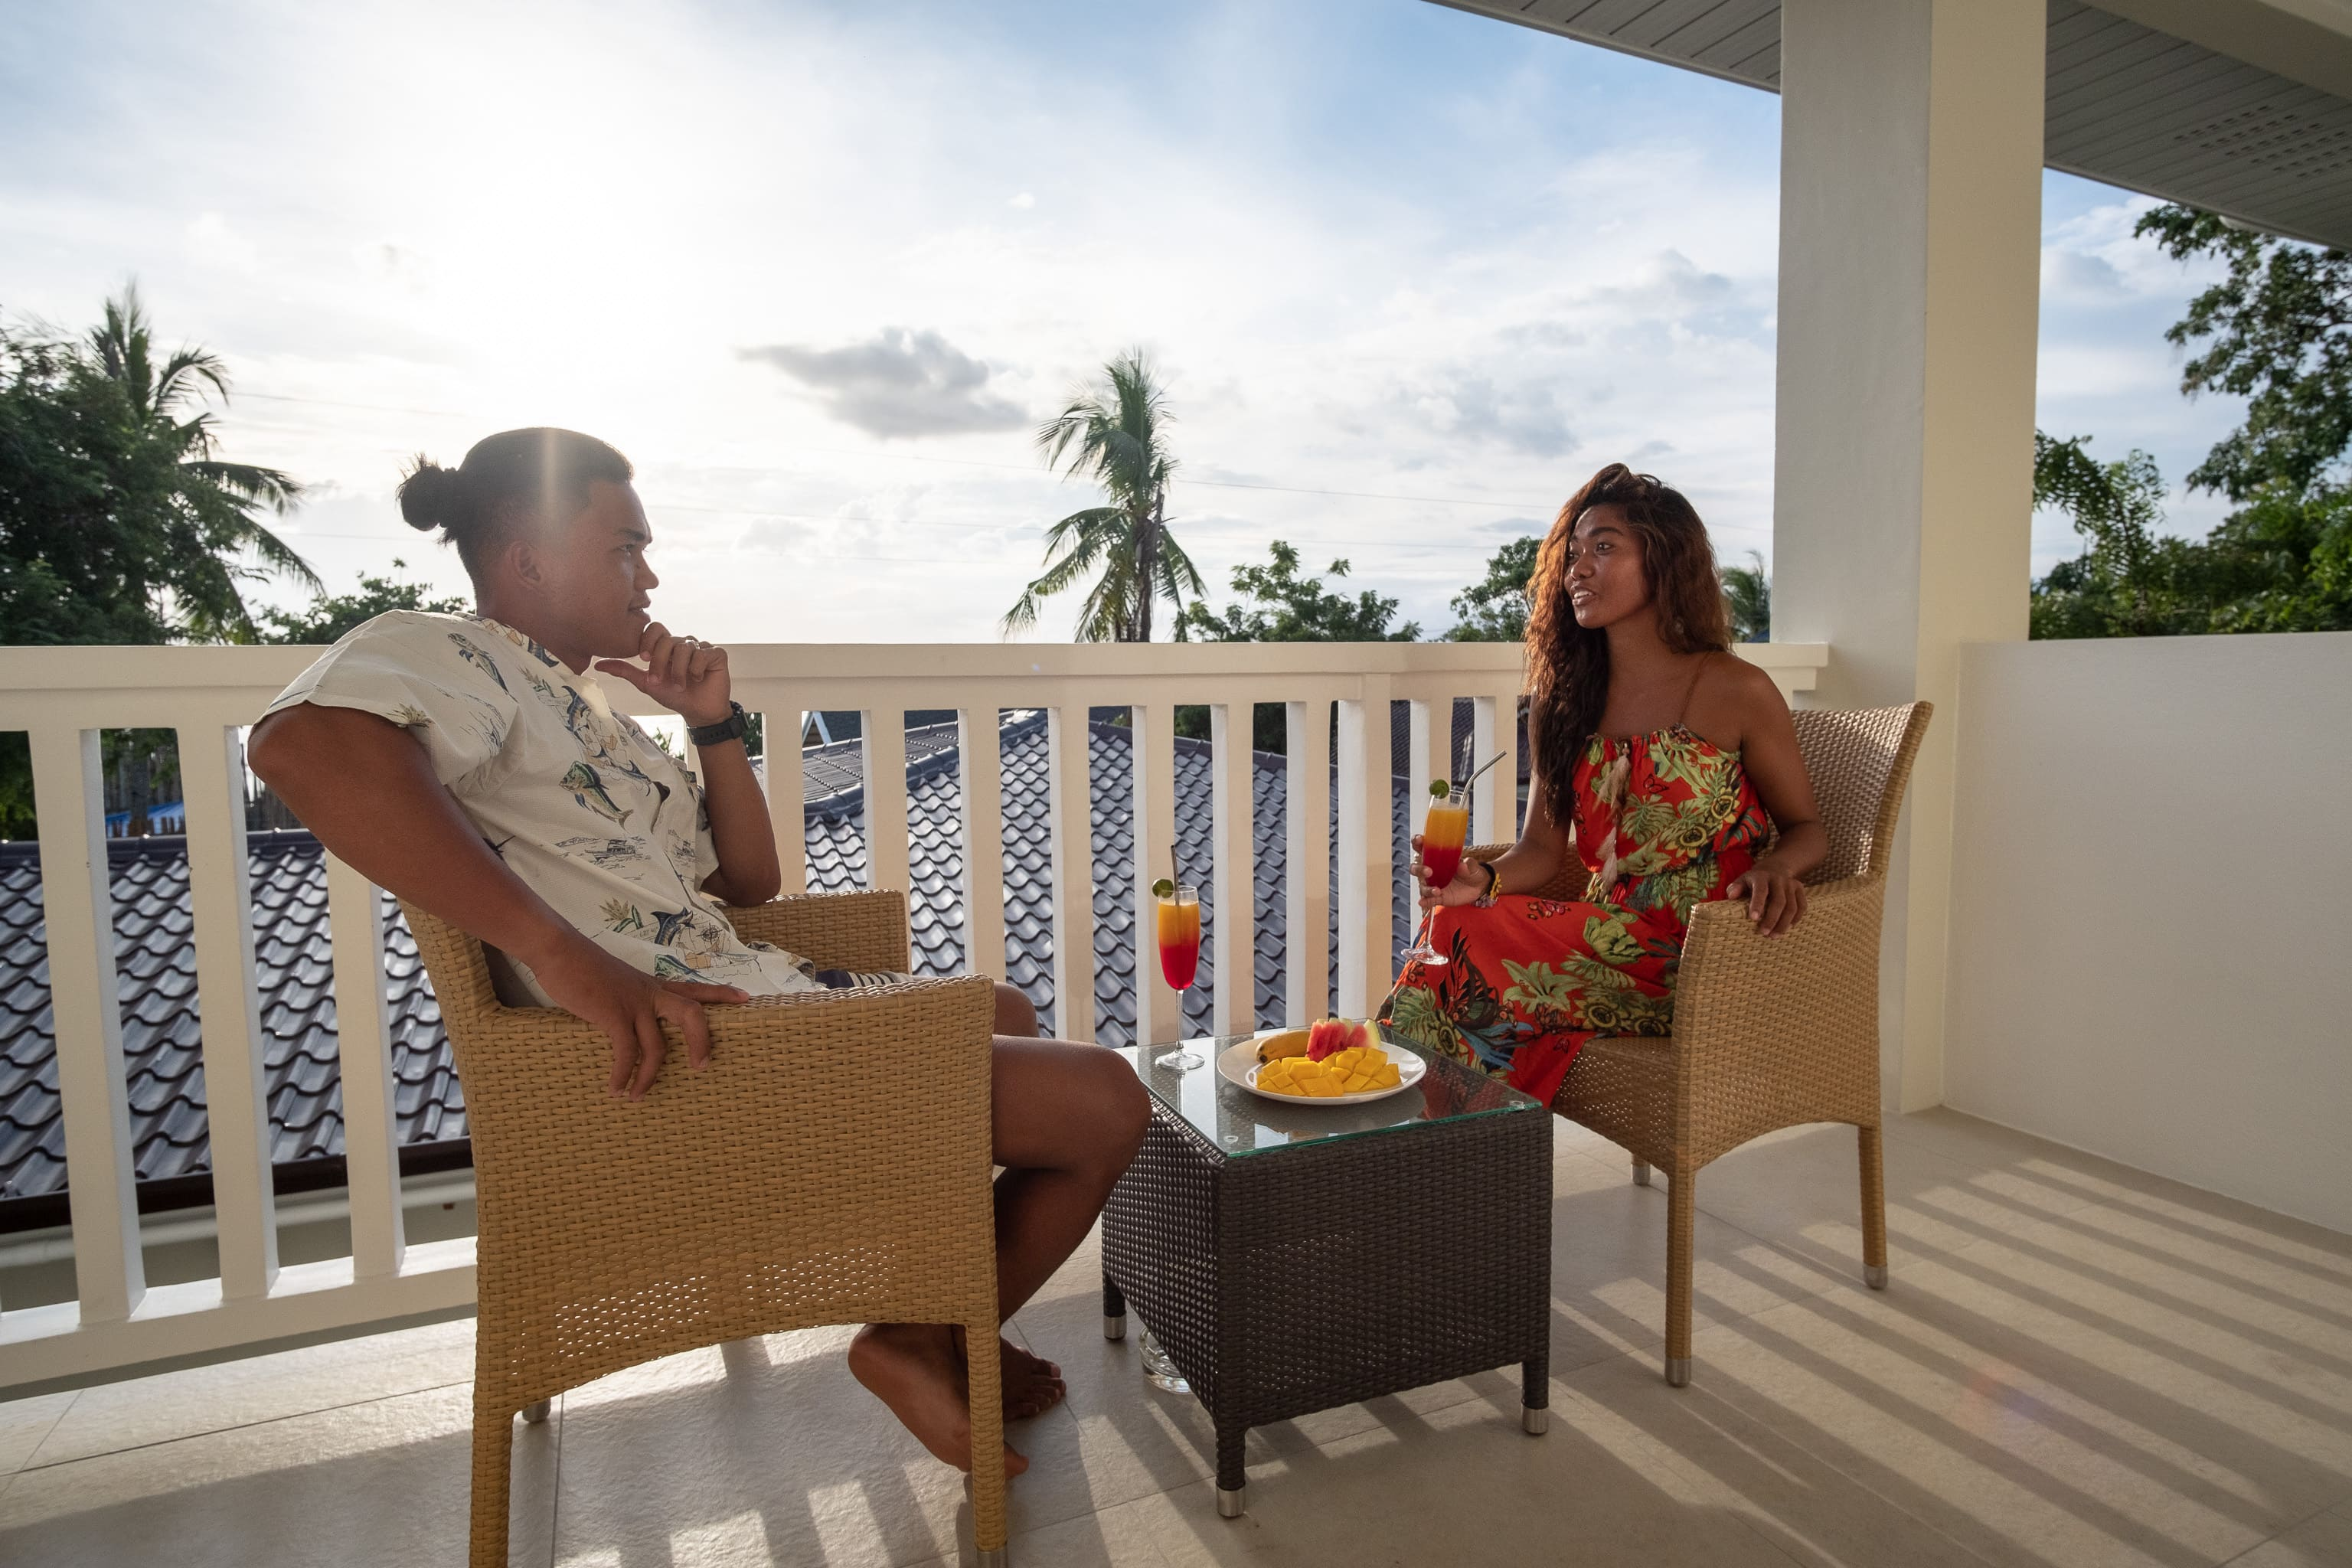 Eating breakfast at the balcony of a room in Cebu Seaview Dive resort